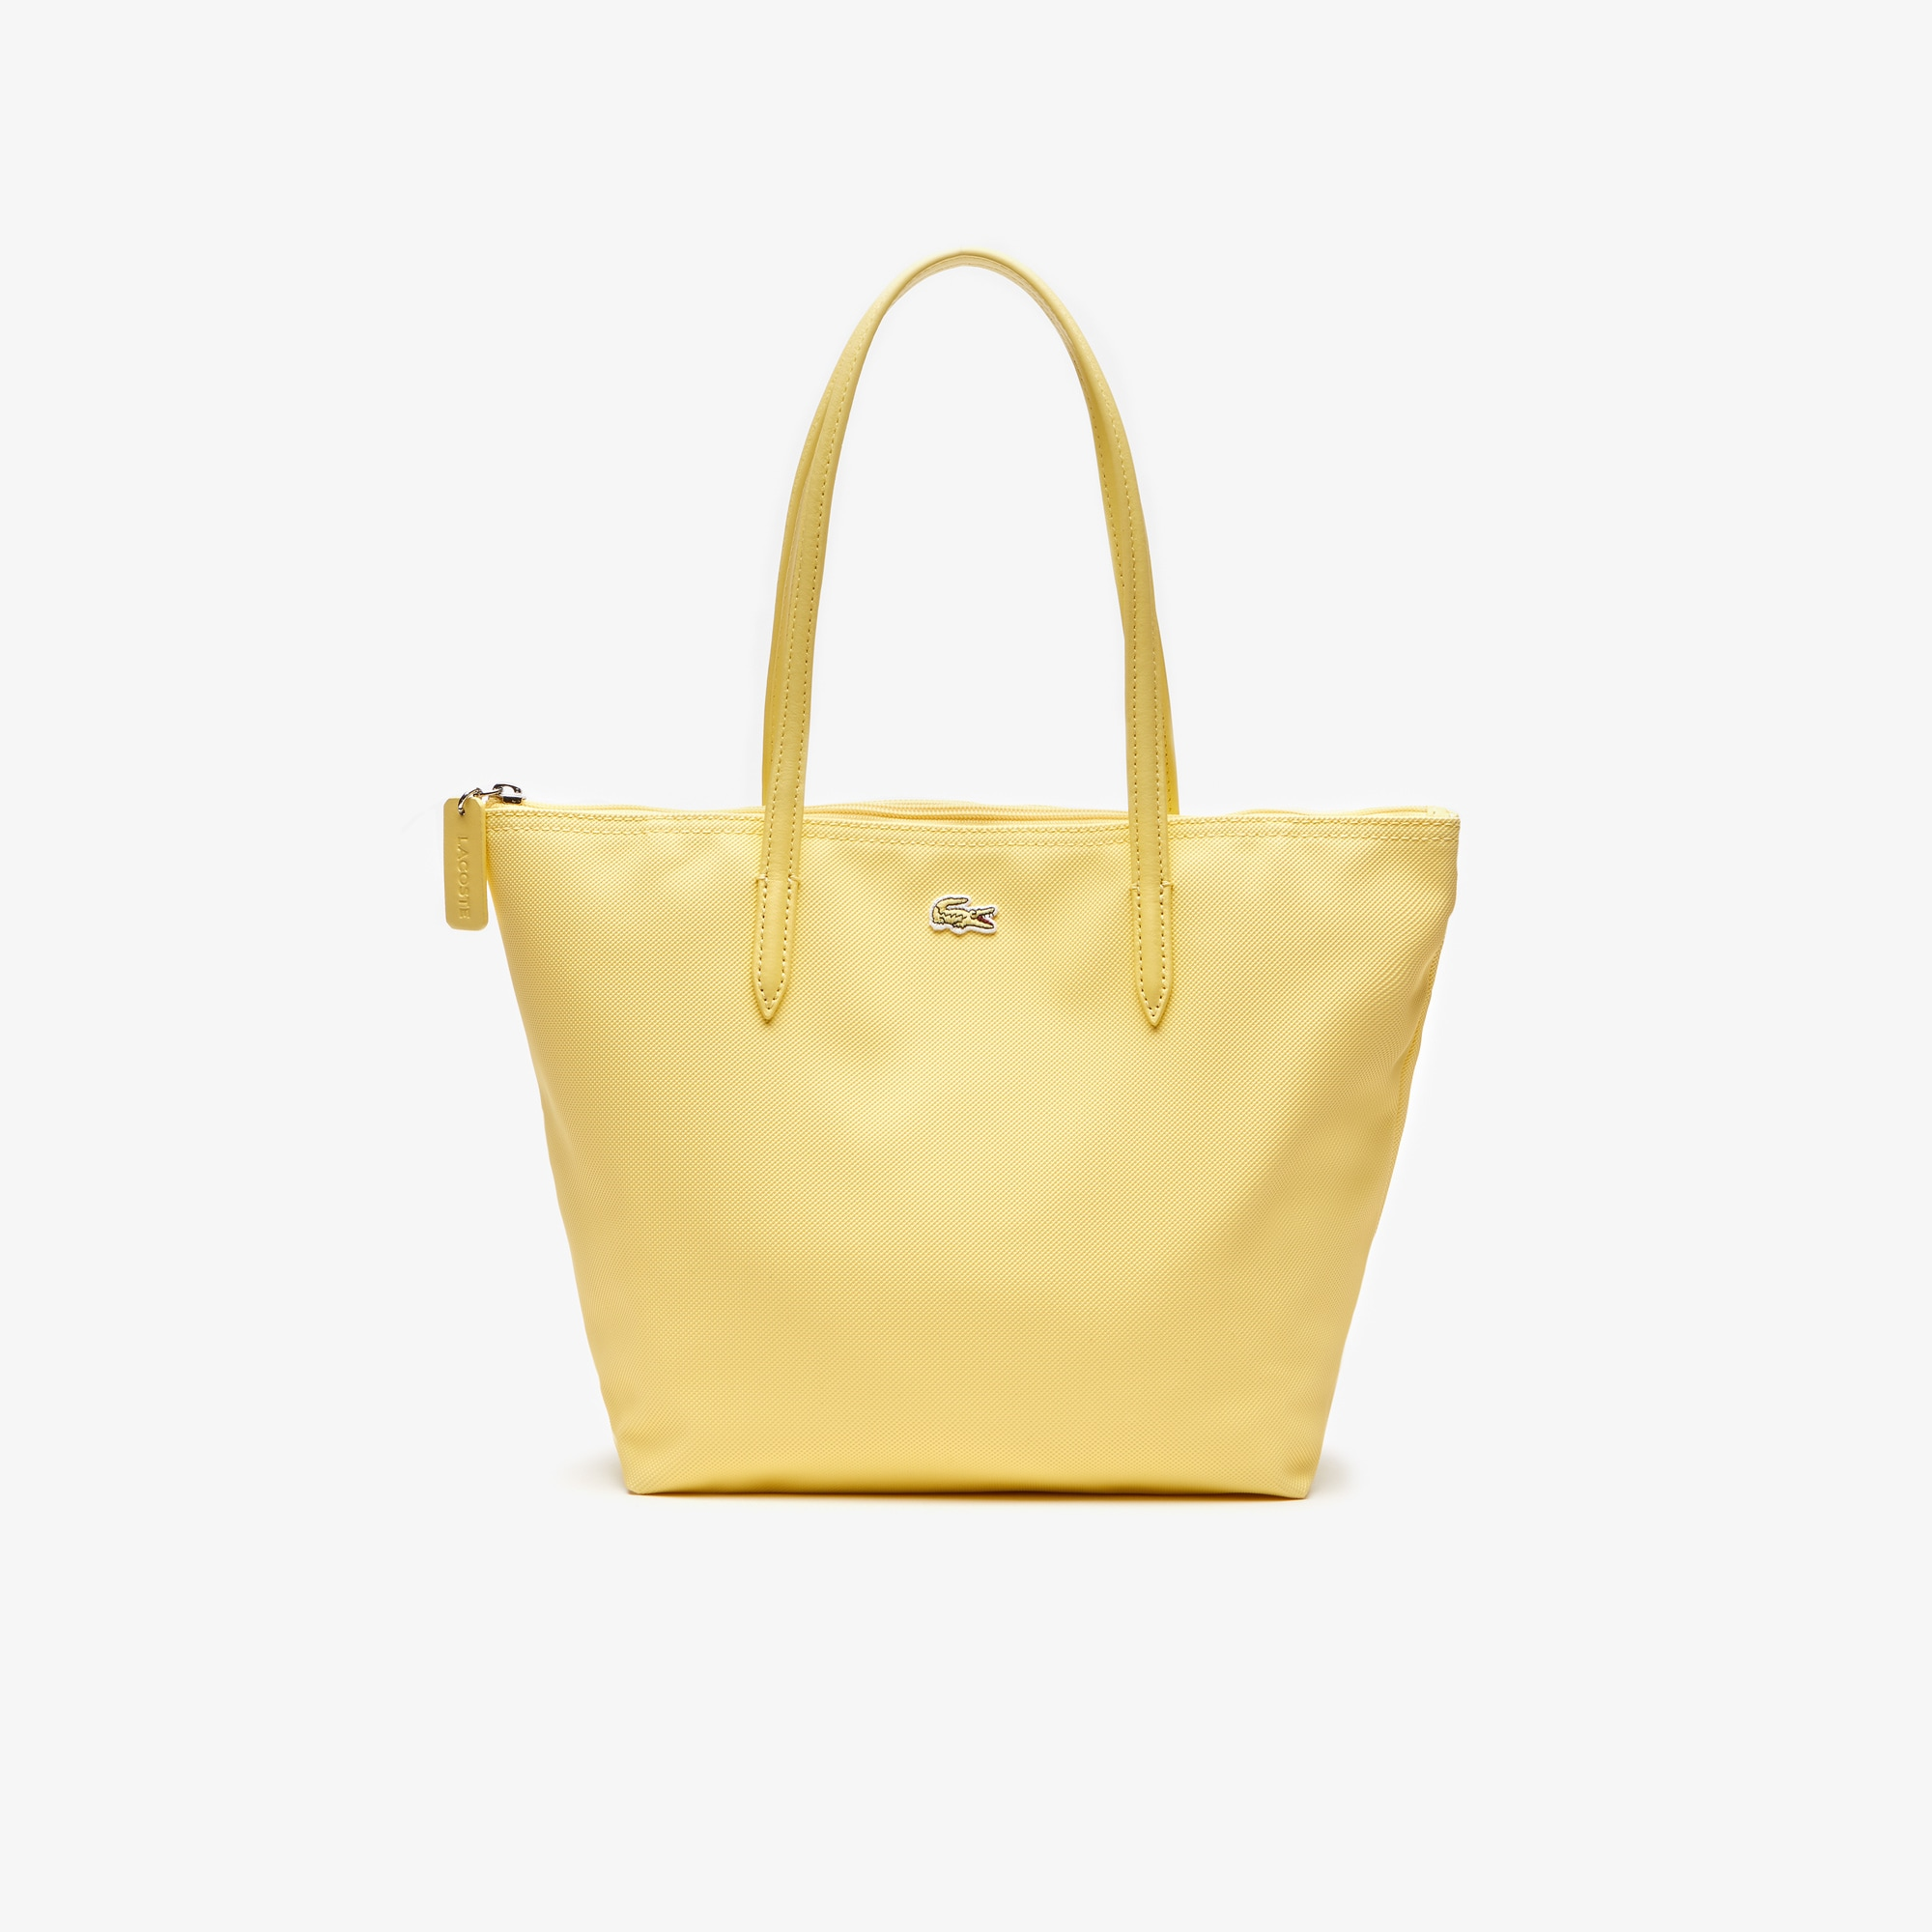 2971d1ad7c Bags   Handbags Collection